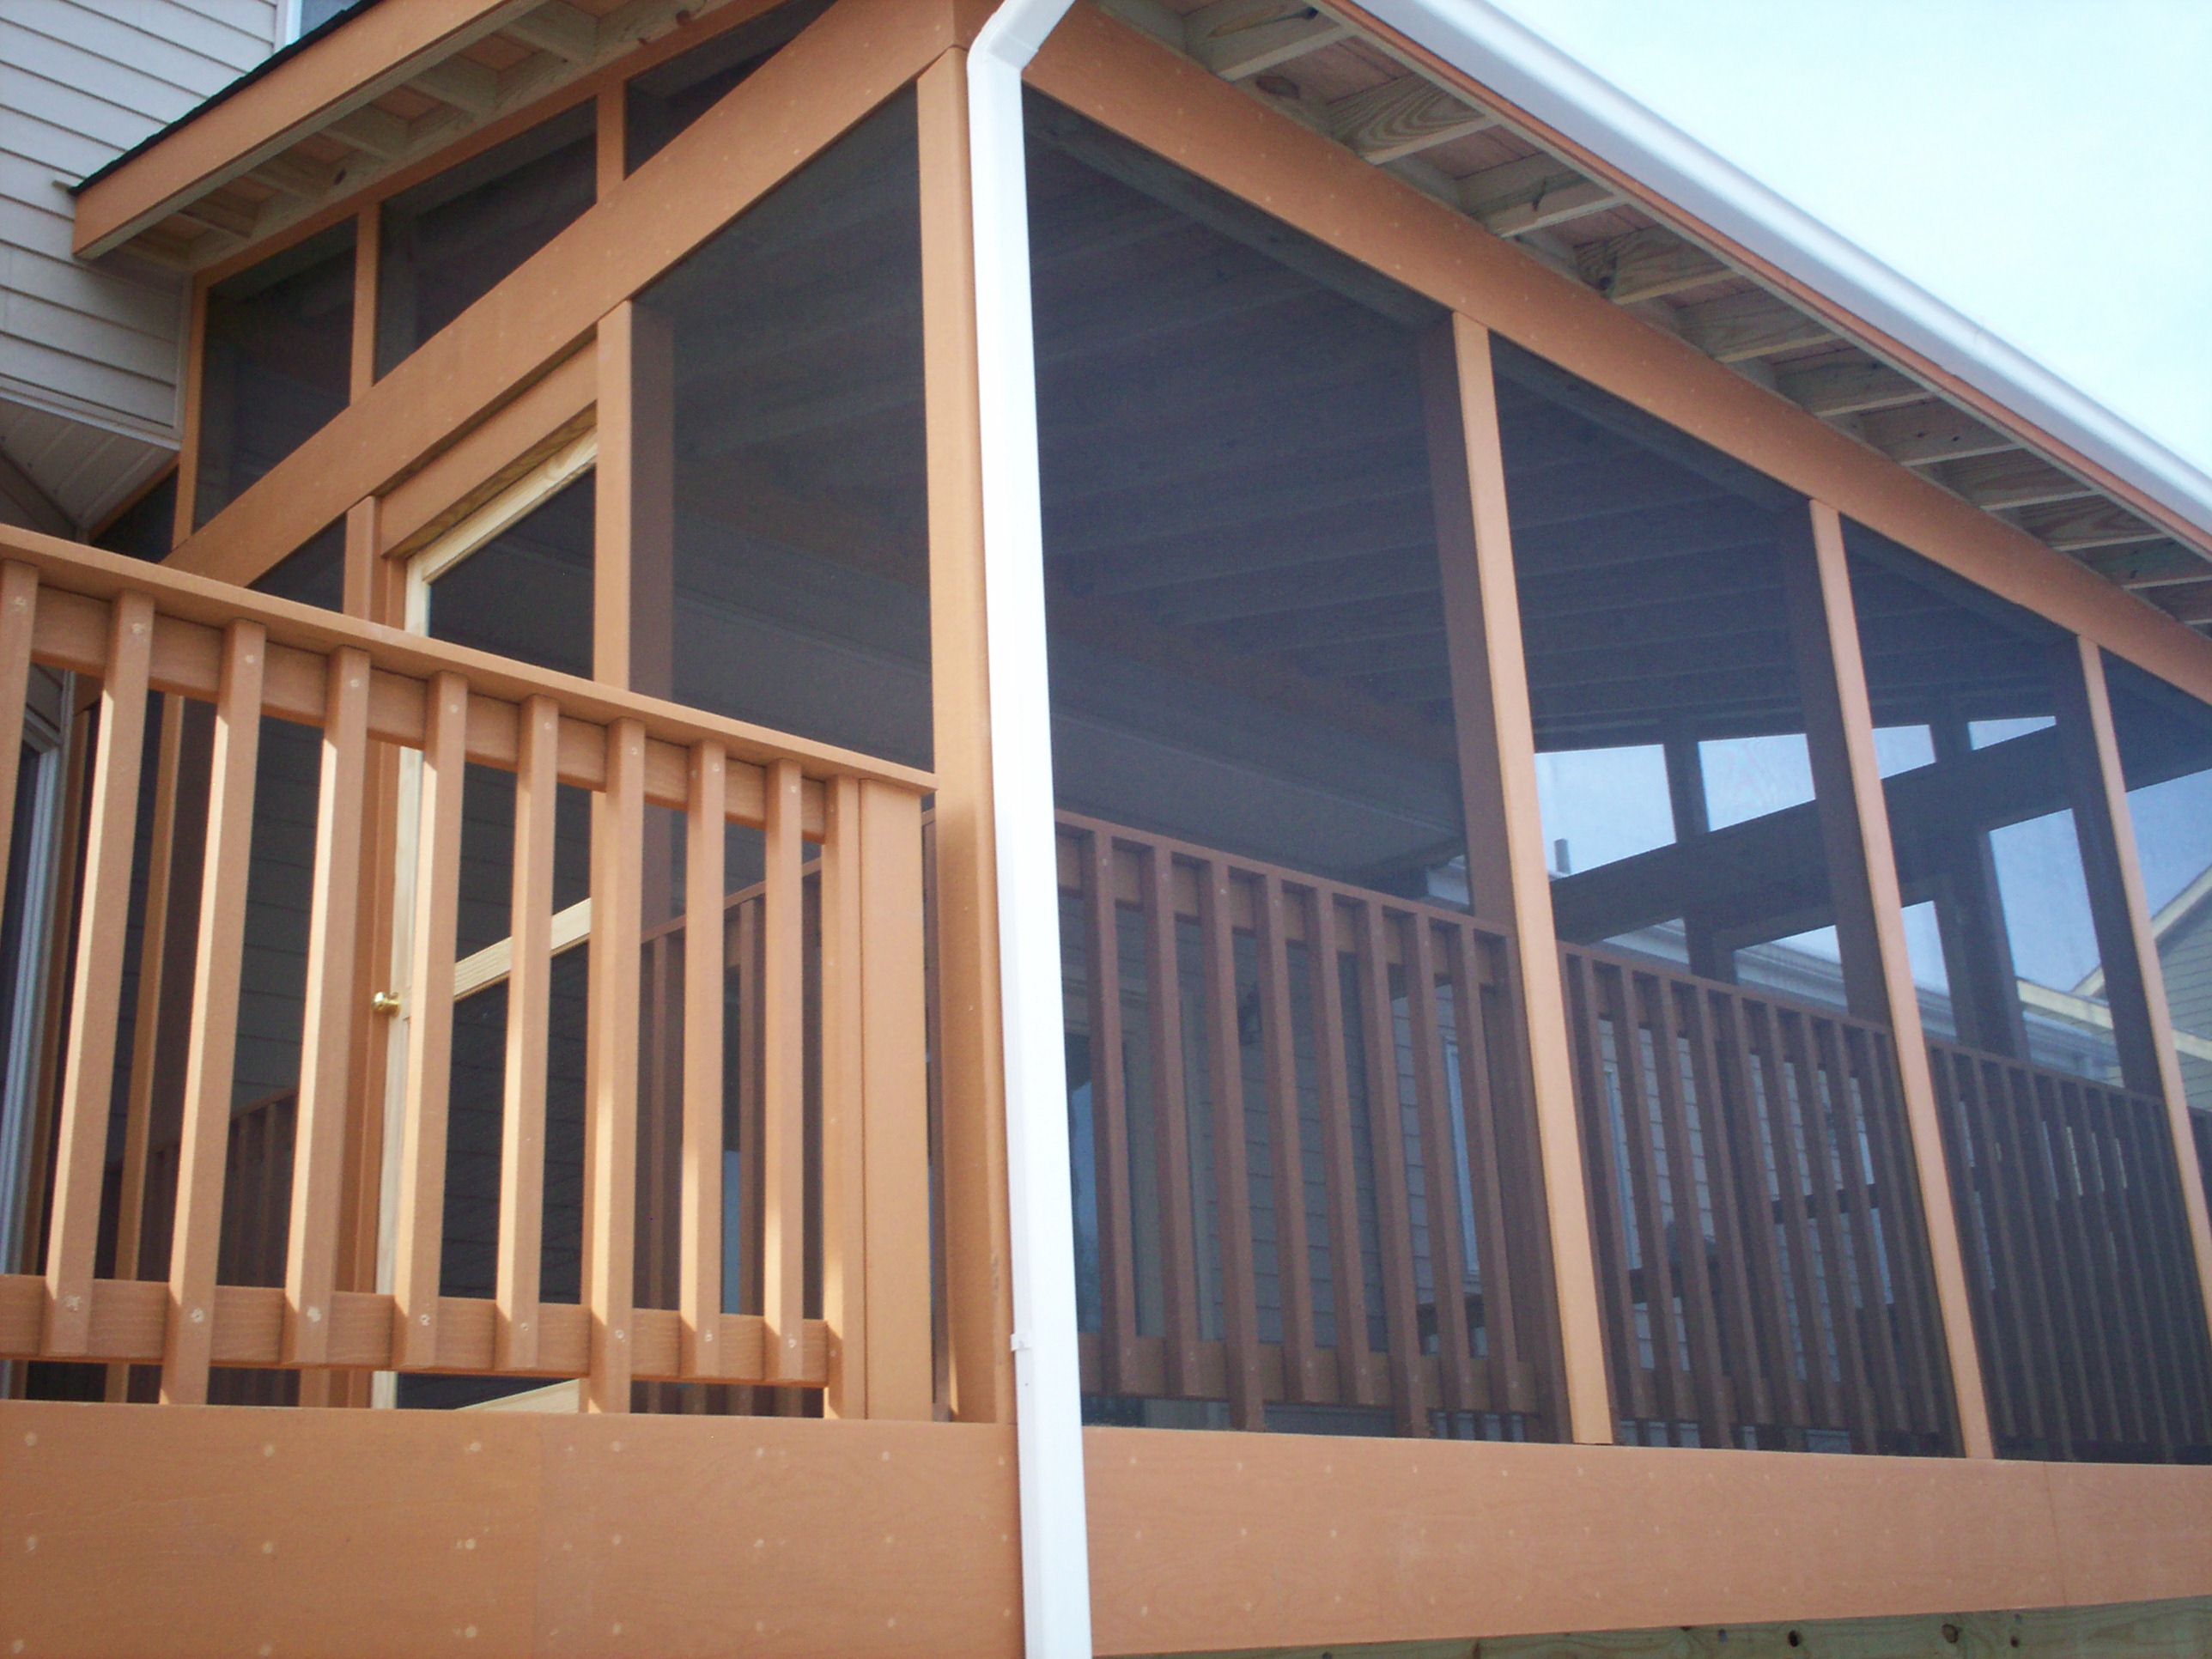 Screened in deck design ideas by archadeck st louis decks screened porches pergolas by - Screen porch roof set ...